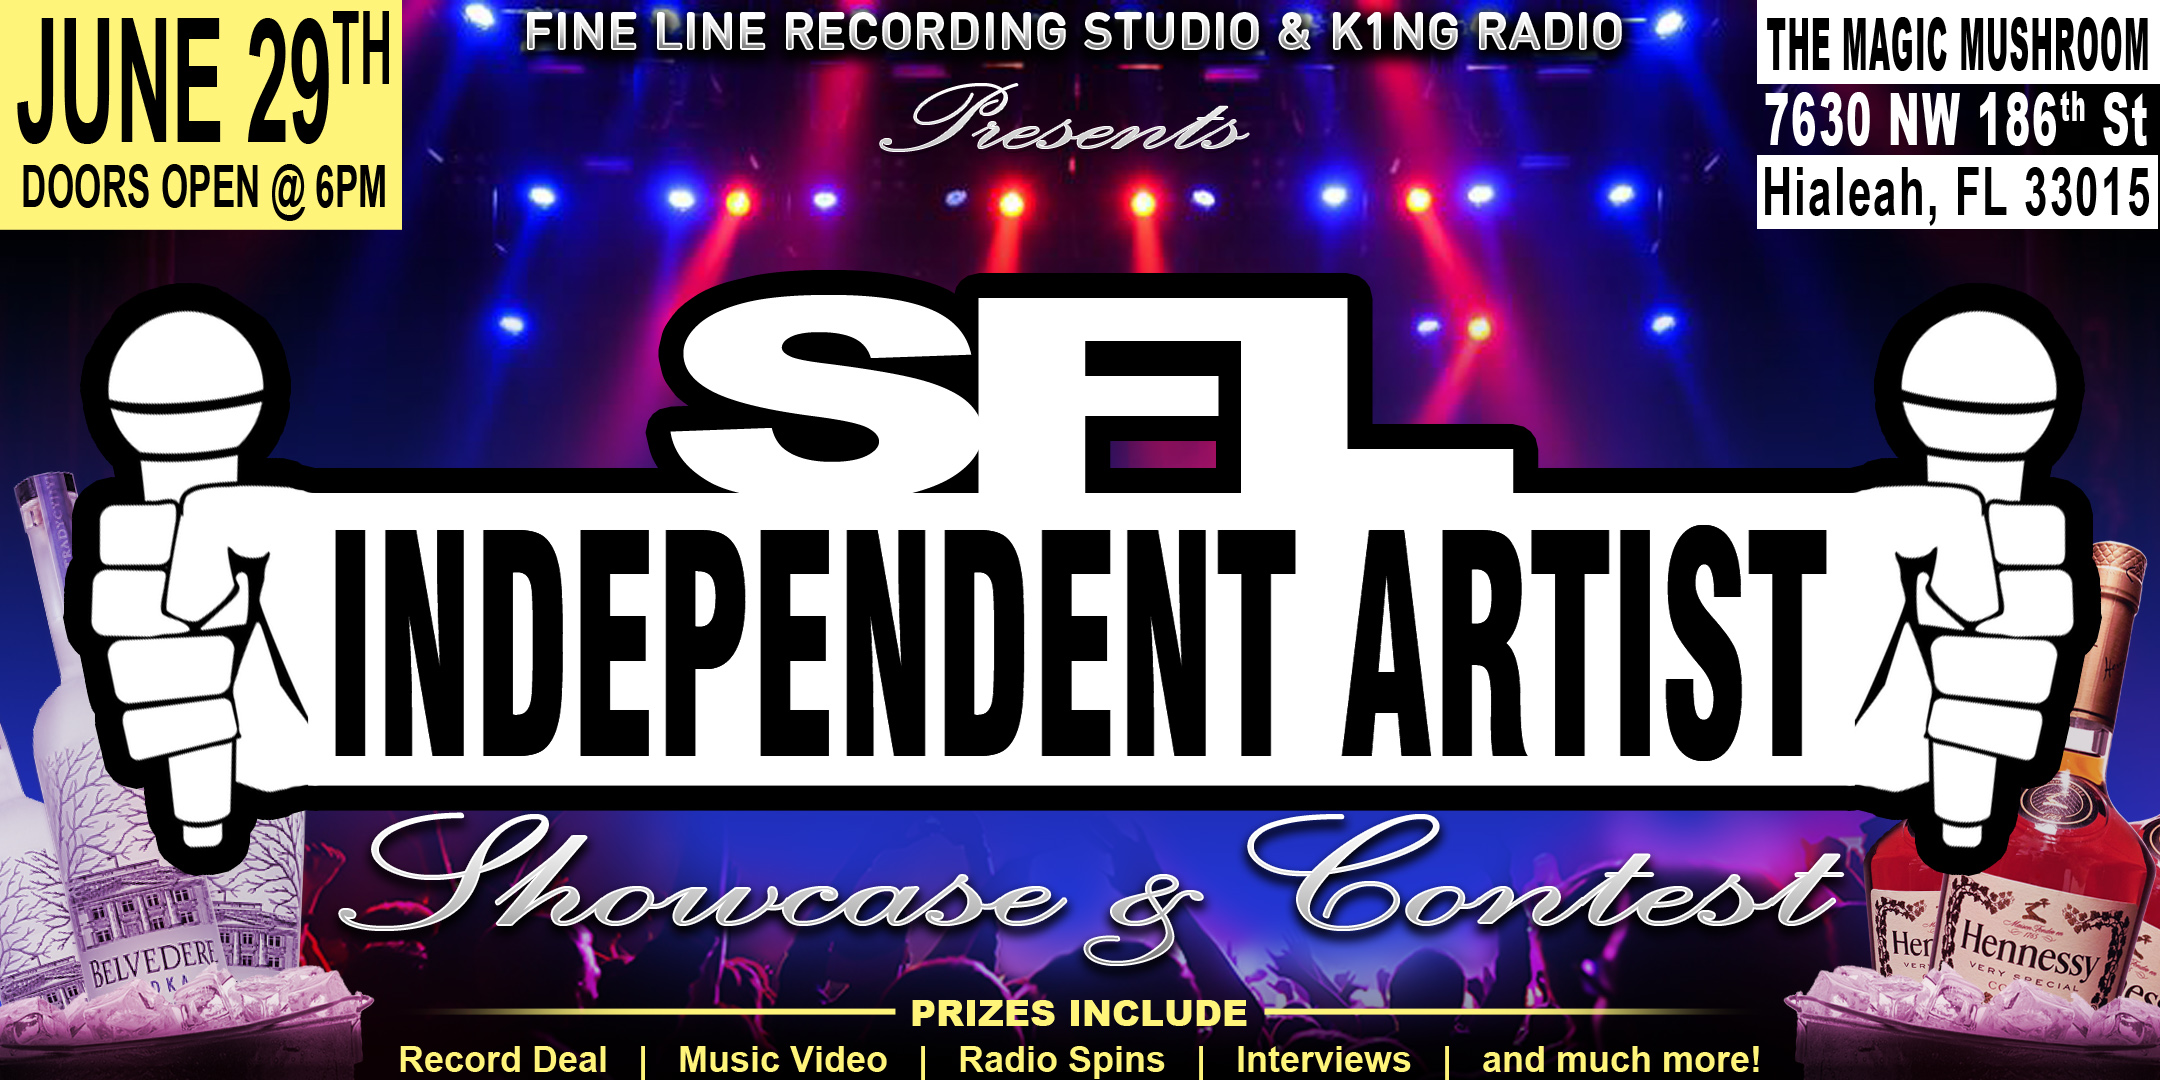 SFL Independent Artist Showcase and Contest